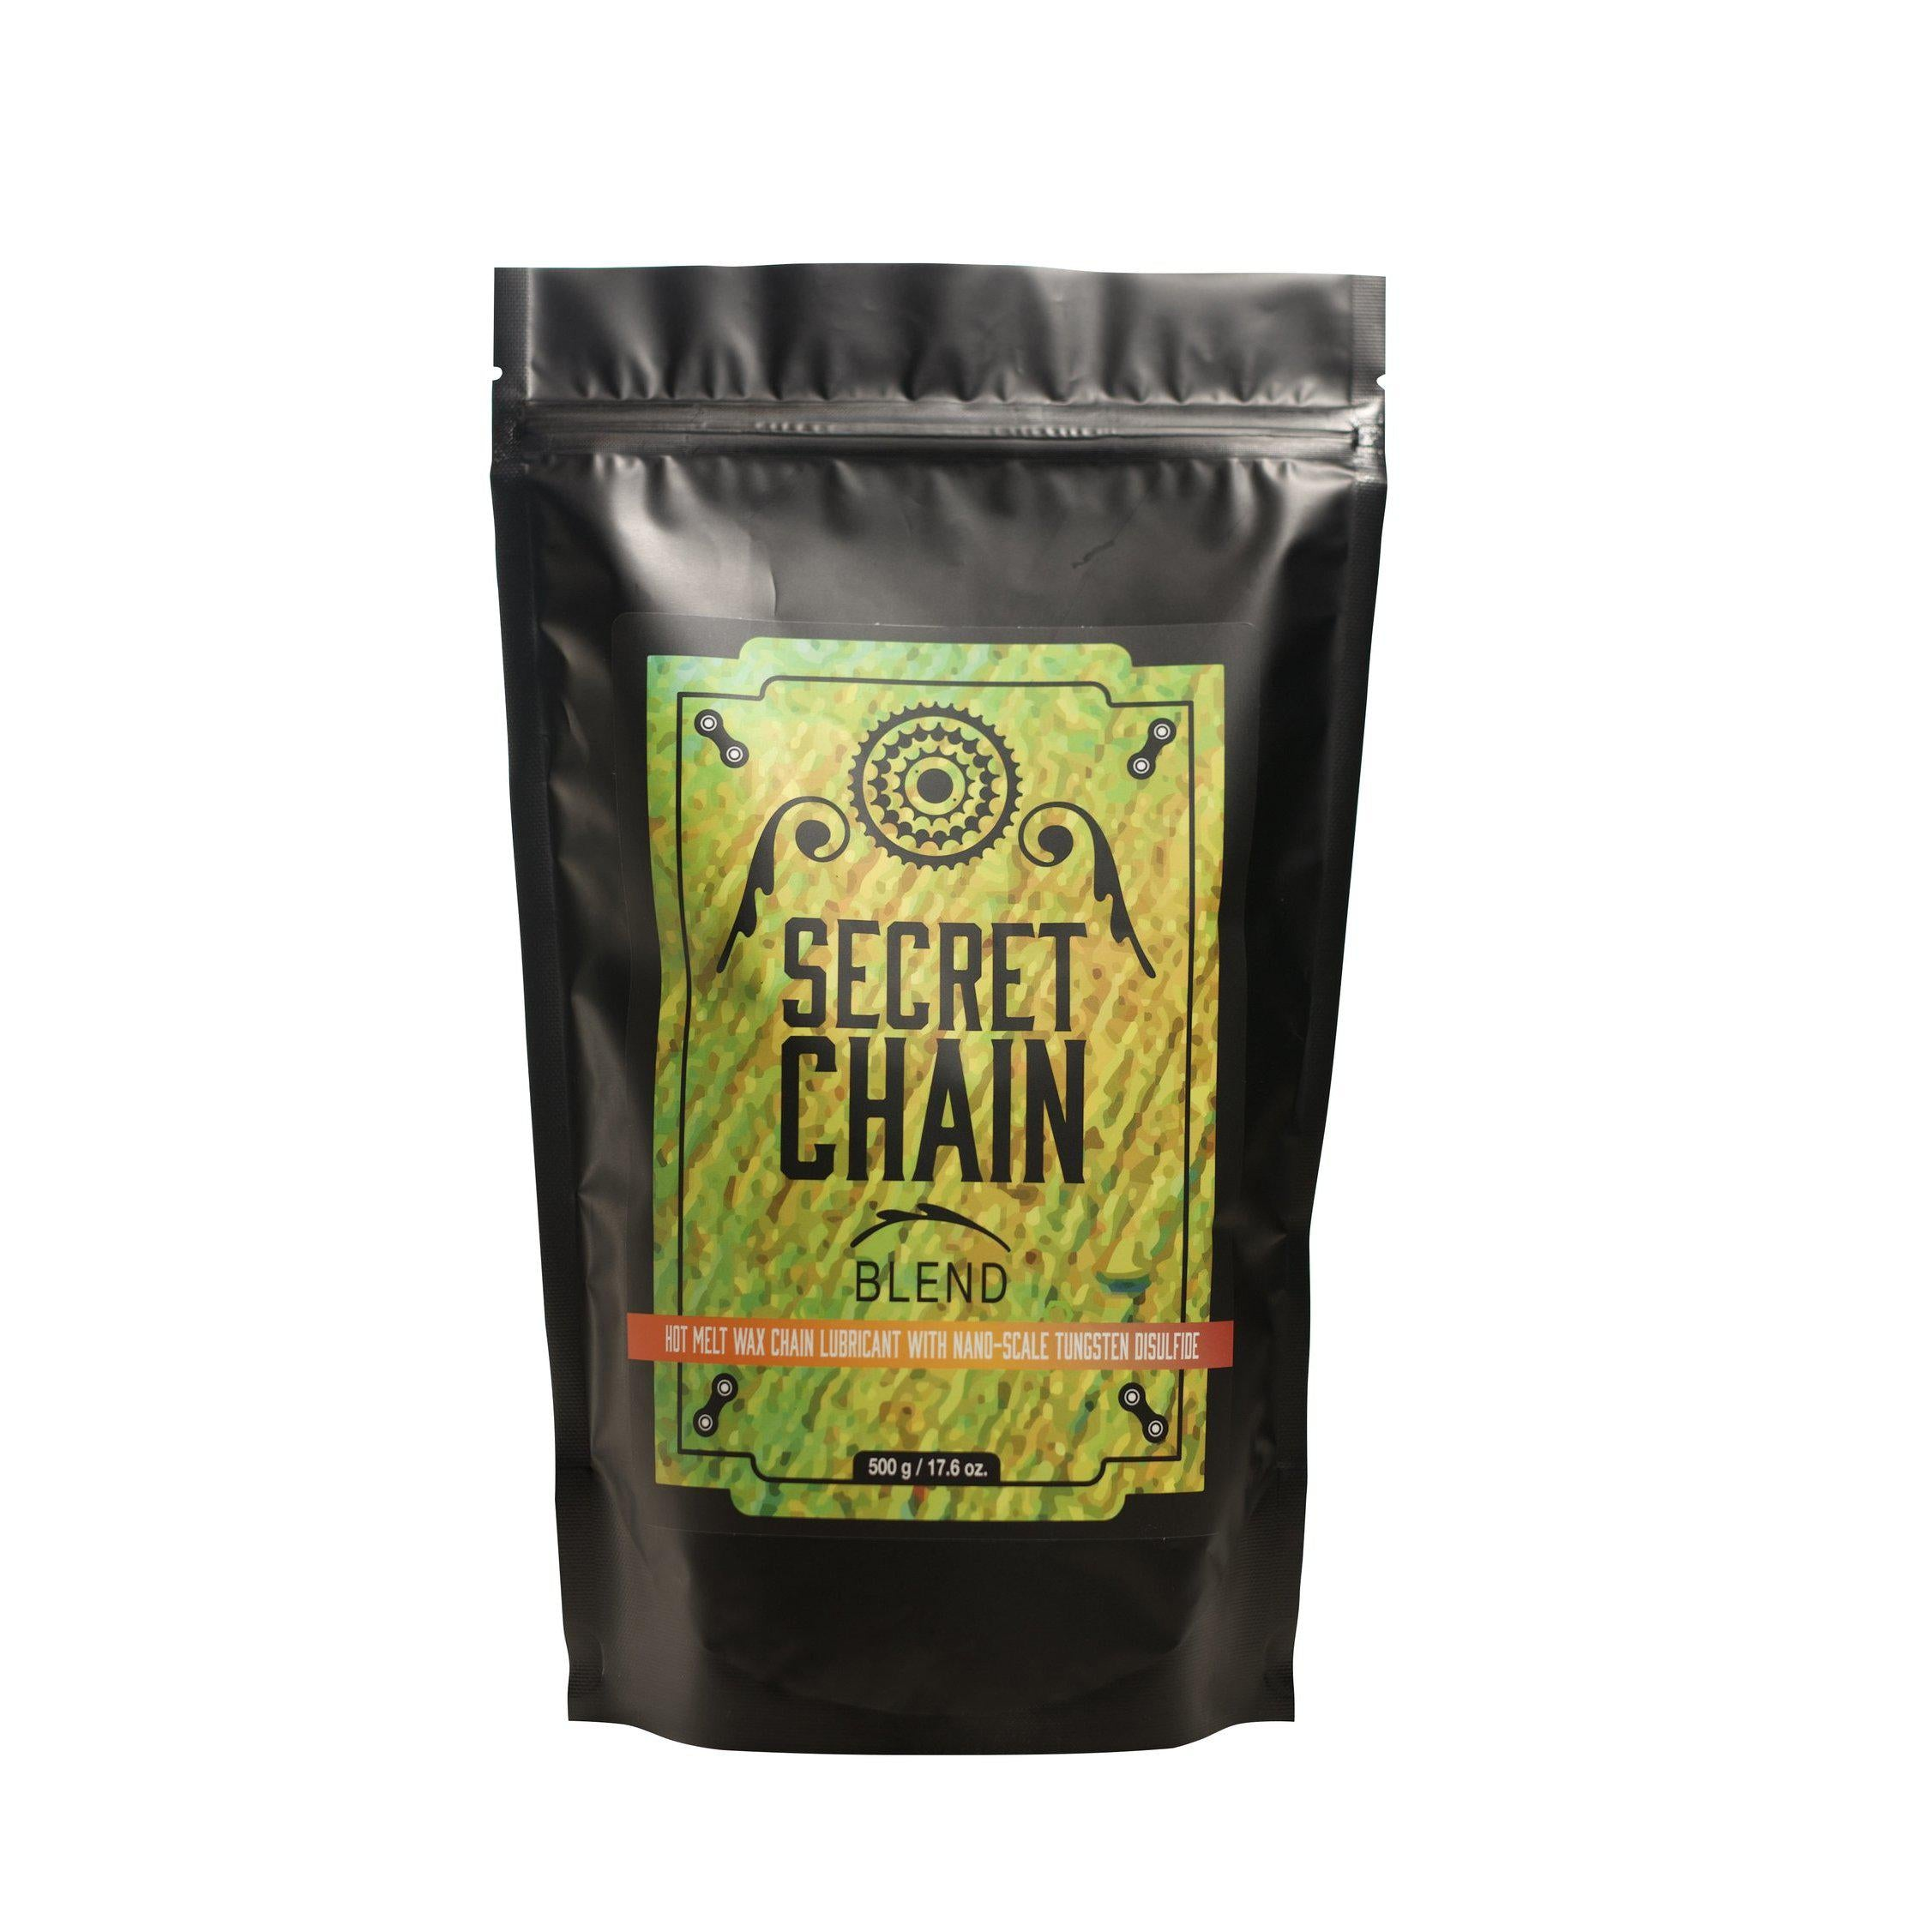 Silca-Silca Secret Chain Blend Hot Melt Wax-Pouch-500g-SIAMAC016ASY0100-saddleback-elite-performance-cycling